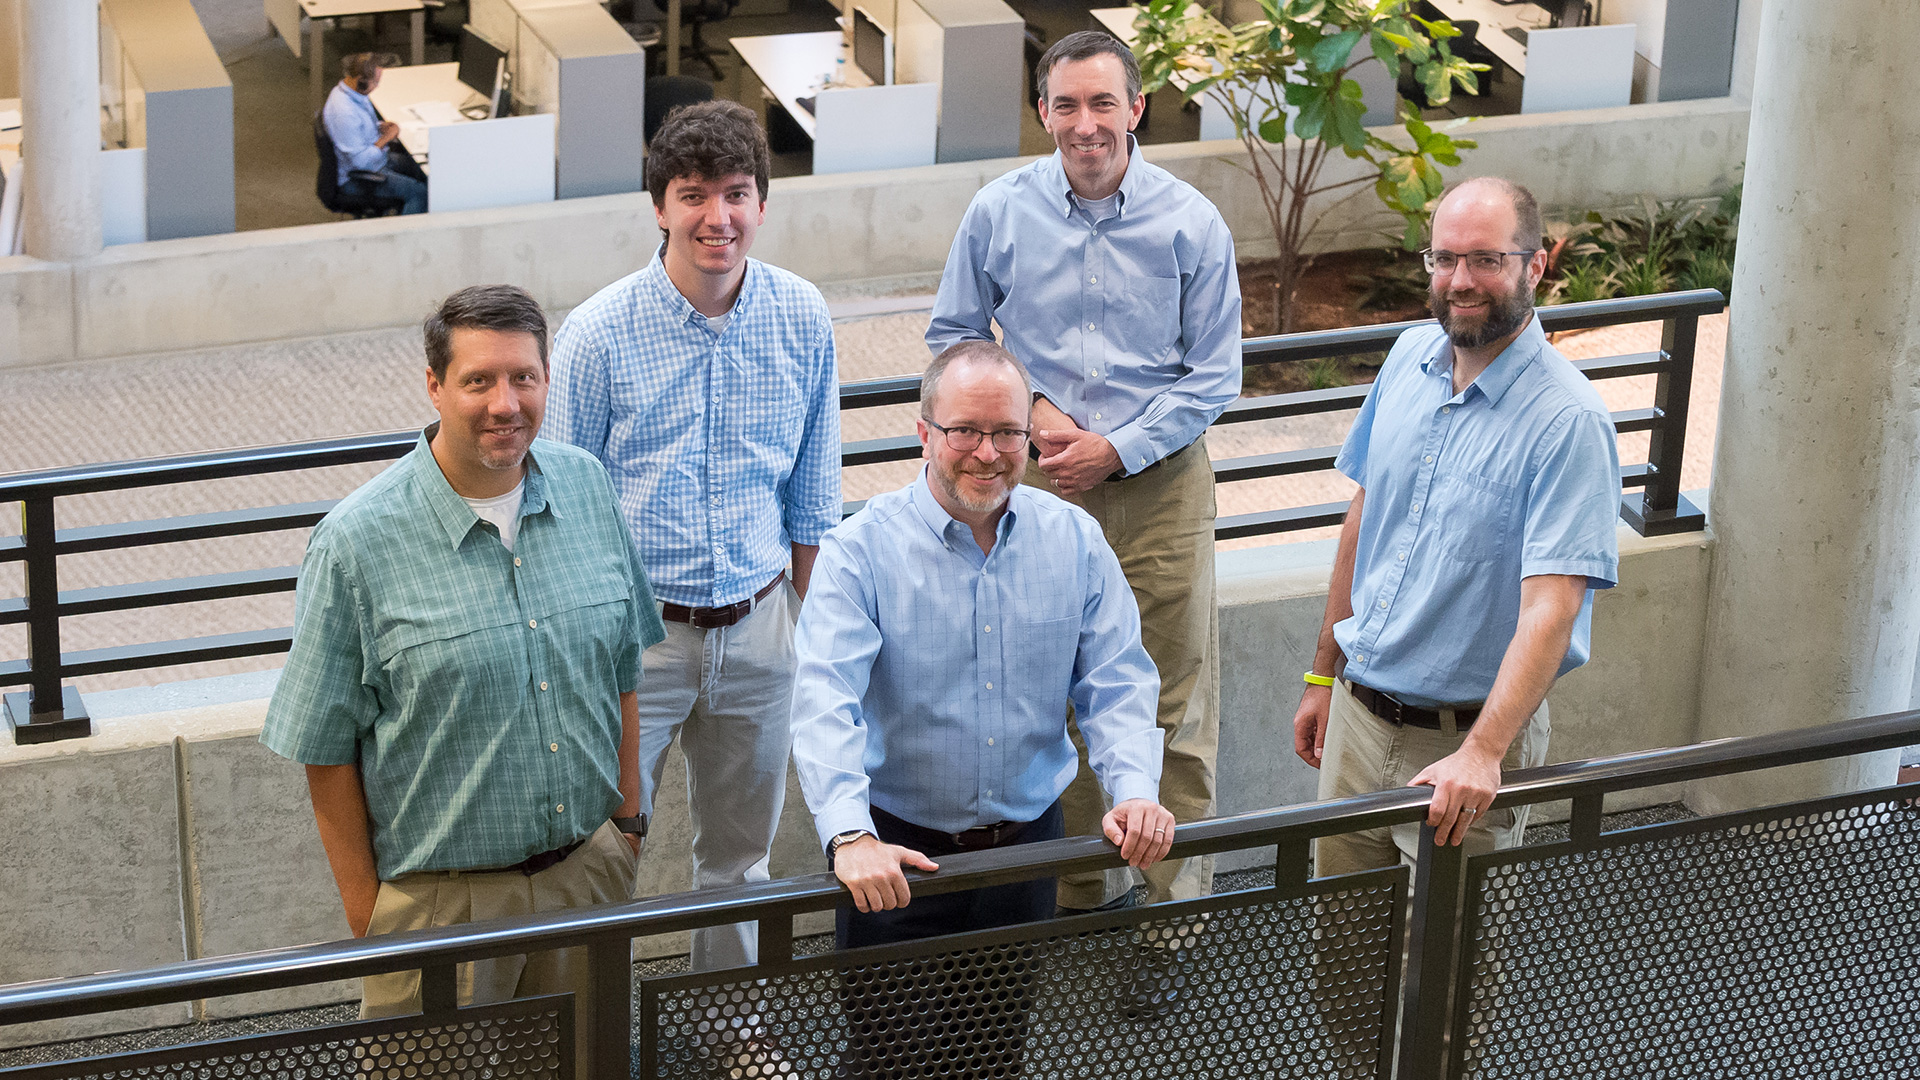 (From left) Kevin Harms, Shane Snyder, Philip Carns, Robert Ross and Robert Latham of the Darshan team. (Image by Argonne National Laboratory.)